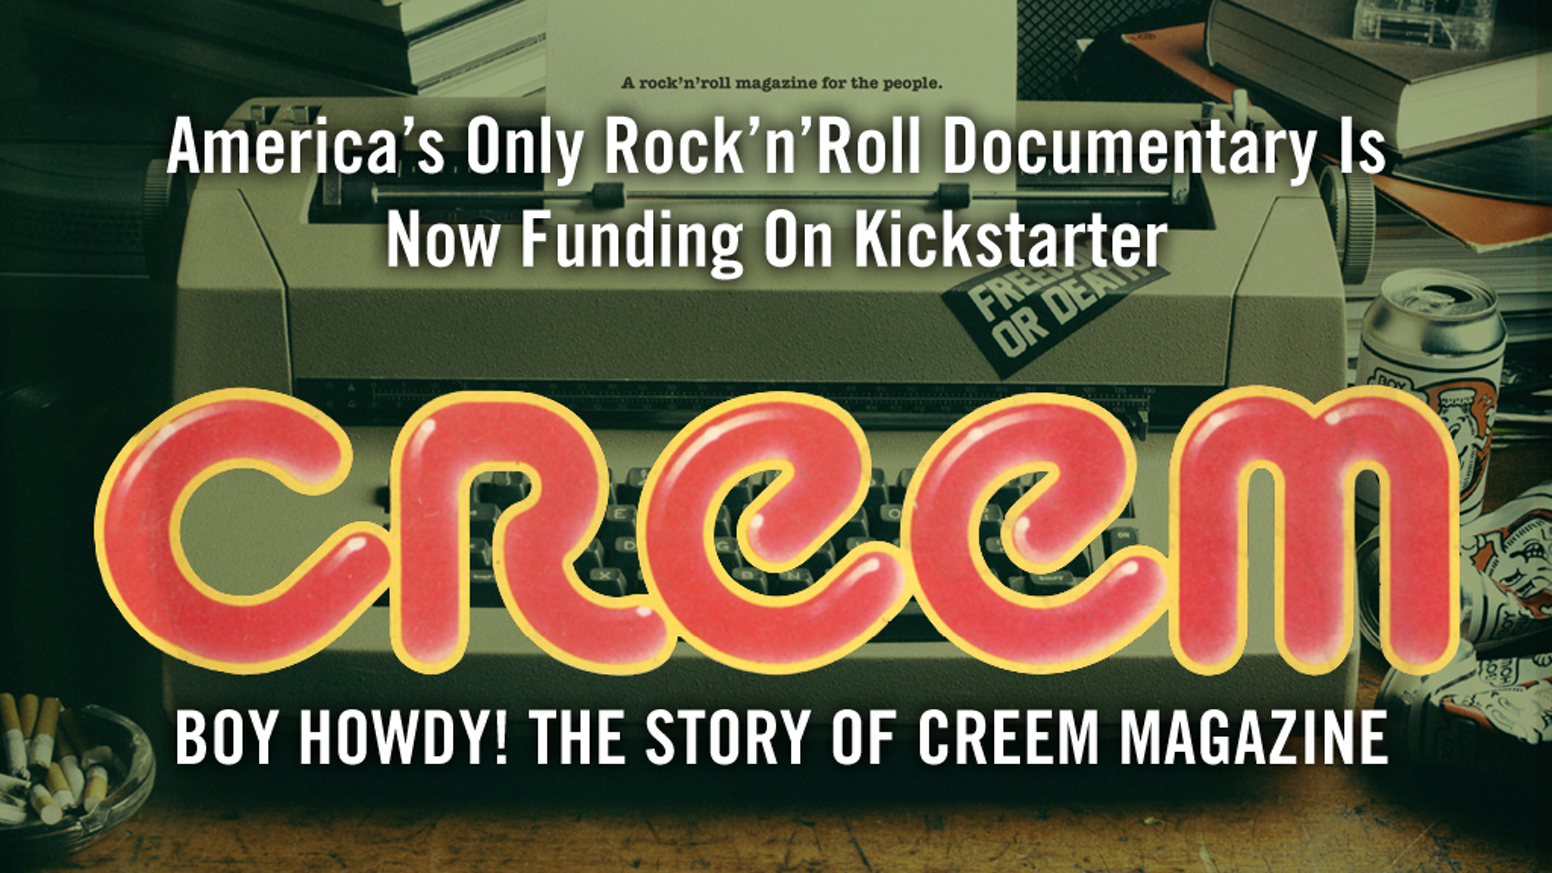 boy howdy the story of creem magazine.png